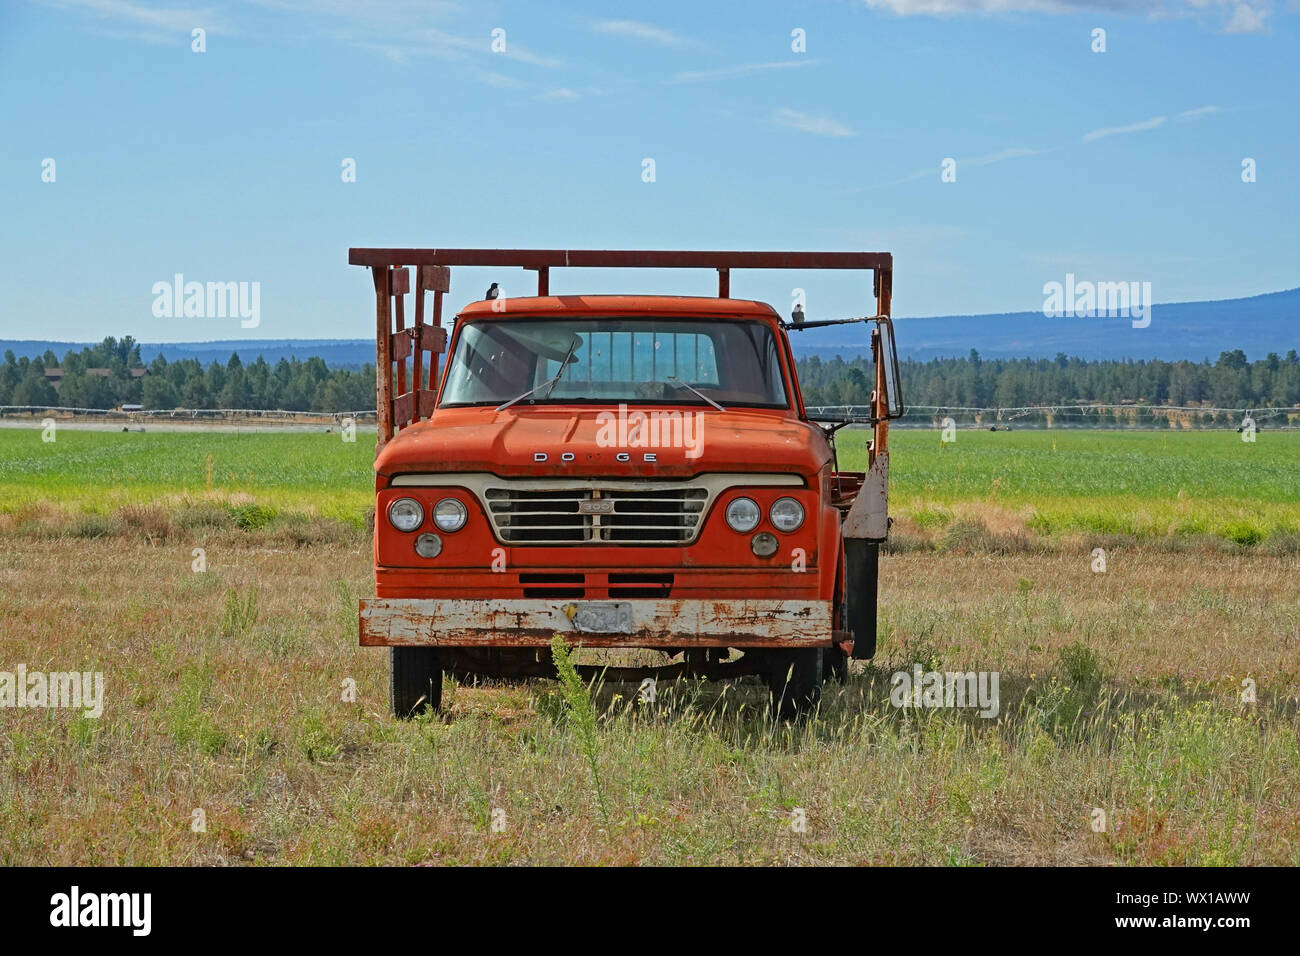 A 1965 Dodge 300 truck sitting in a farm field after being abandoned by the farmer who owns it. Stock Photo